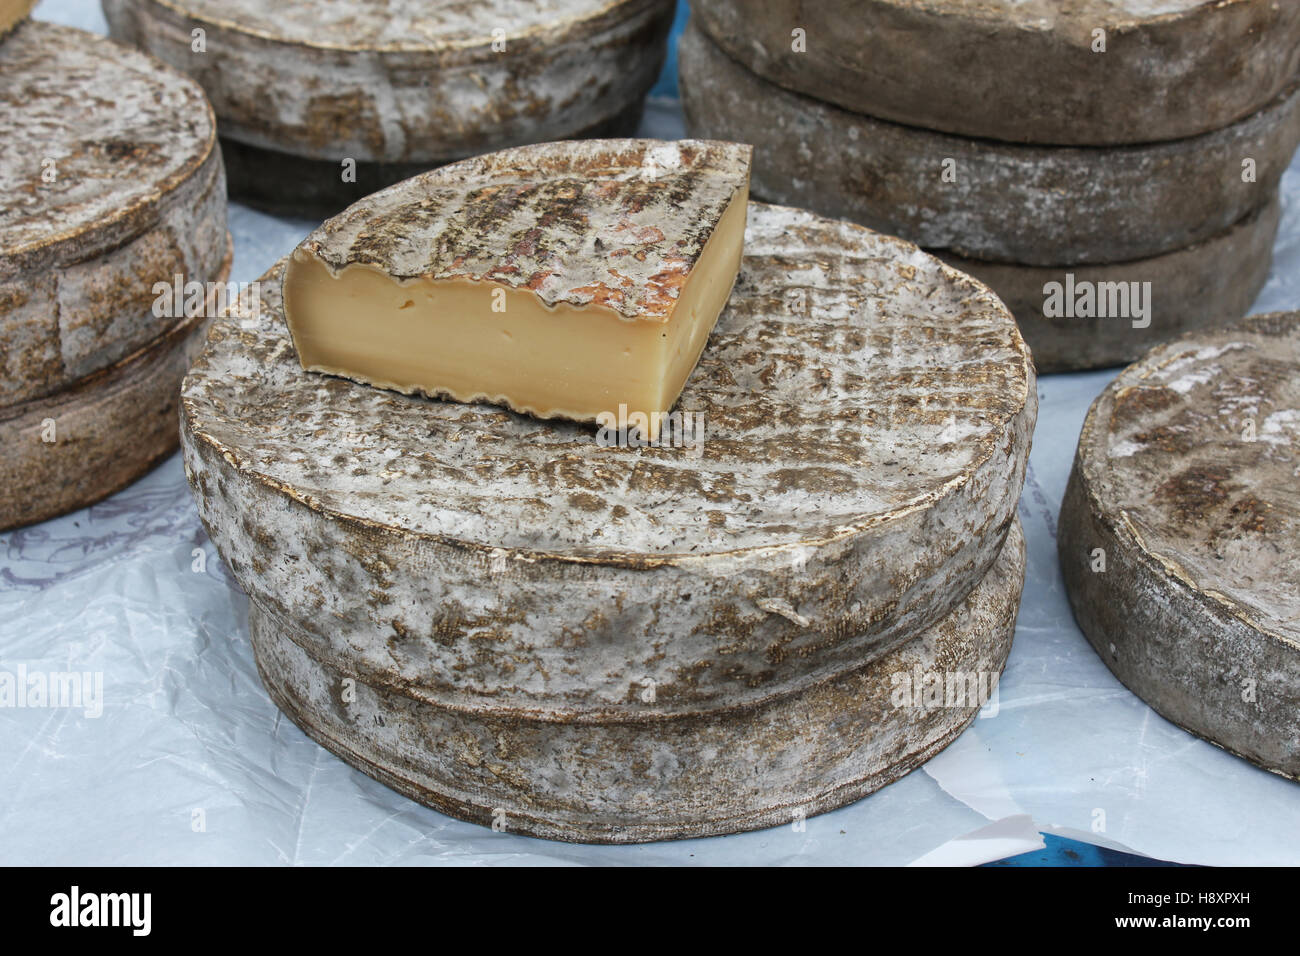 Artisan cheese for sale at a farmers market. - Stock Image